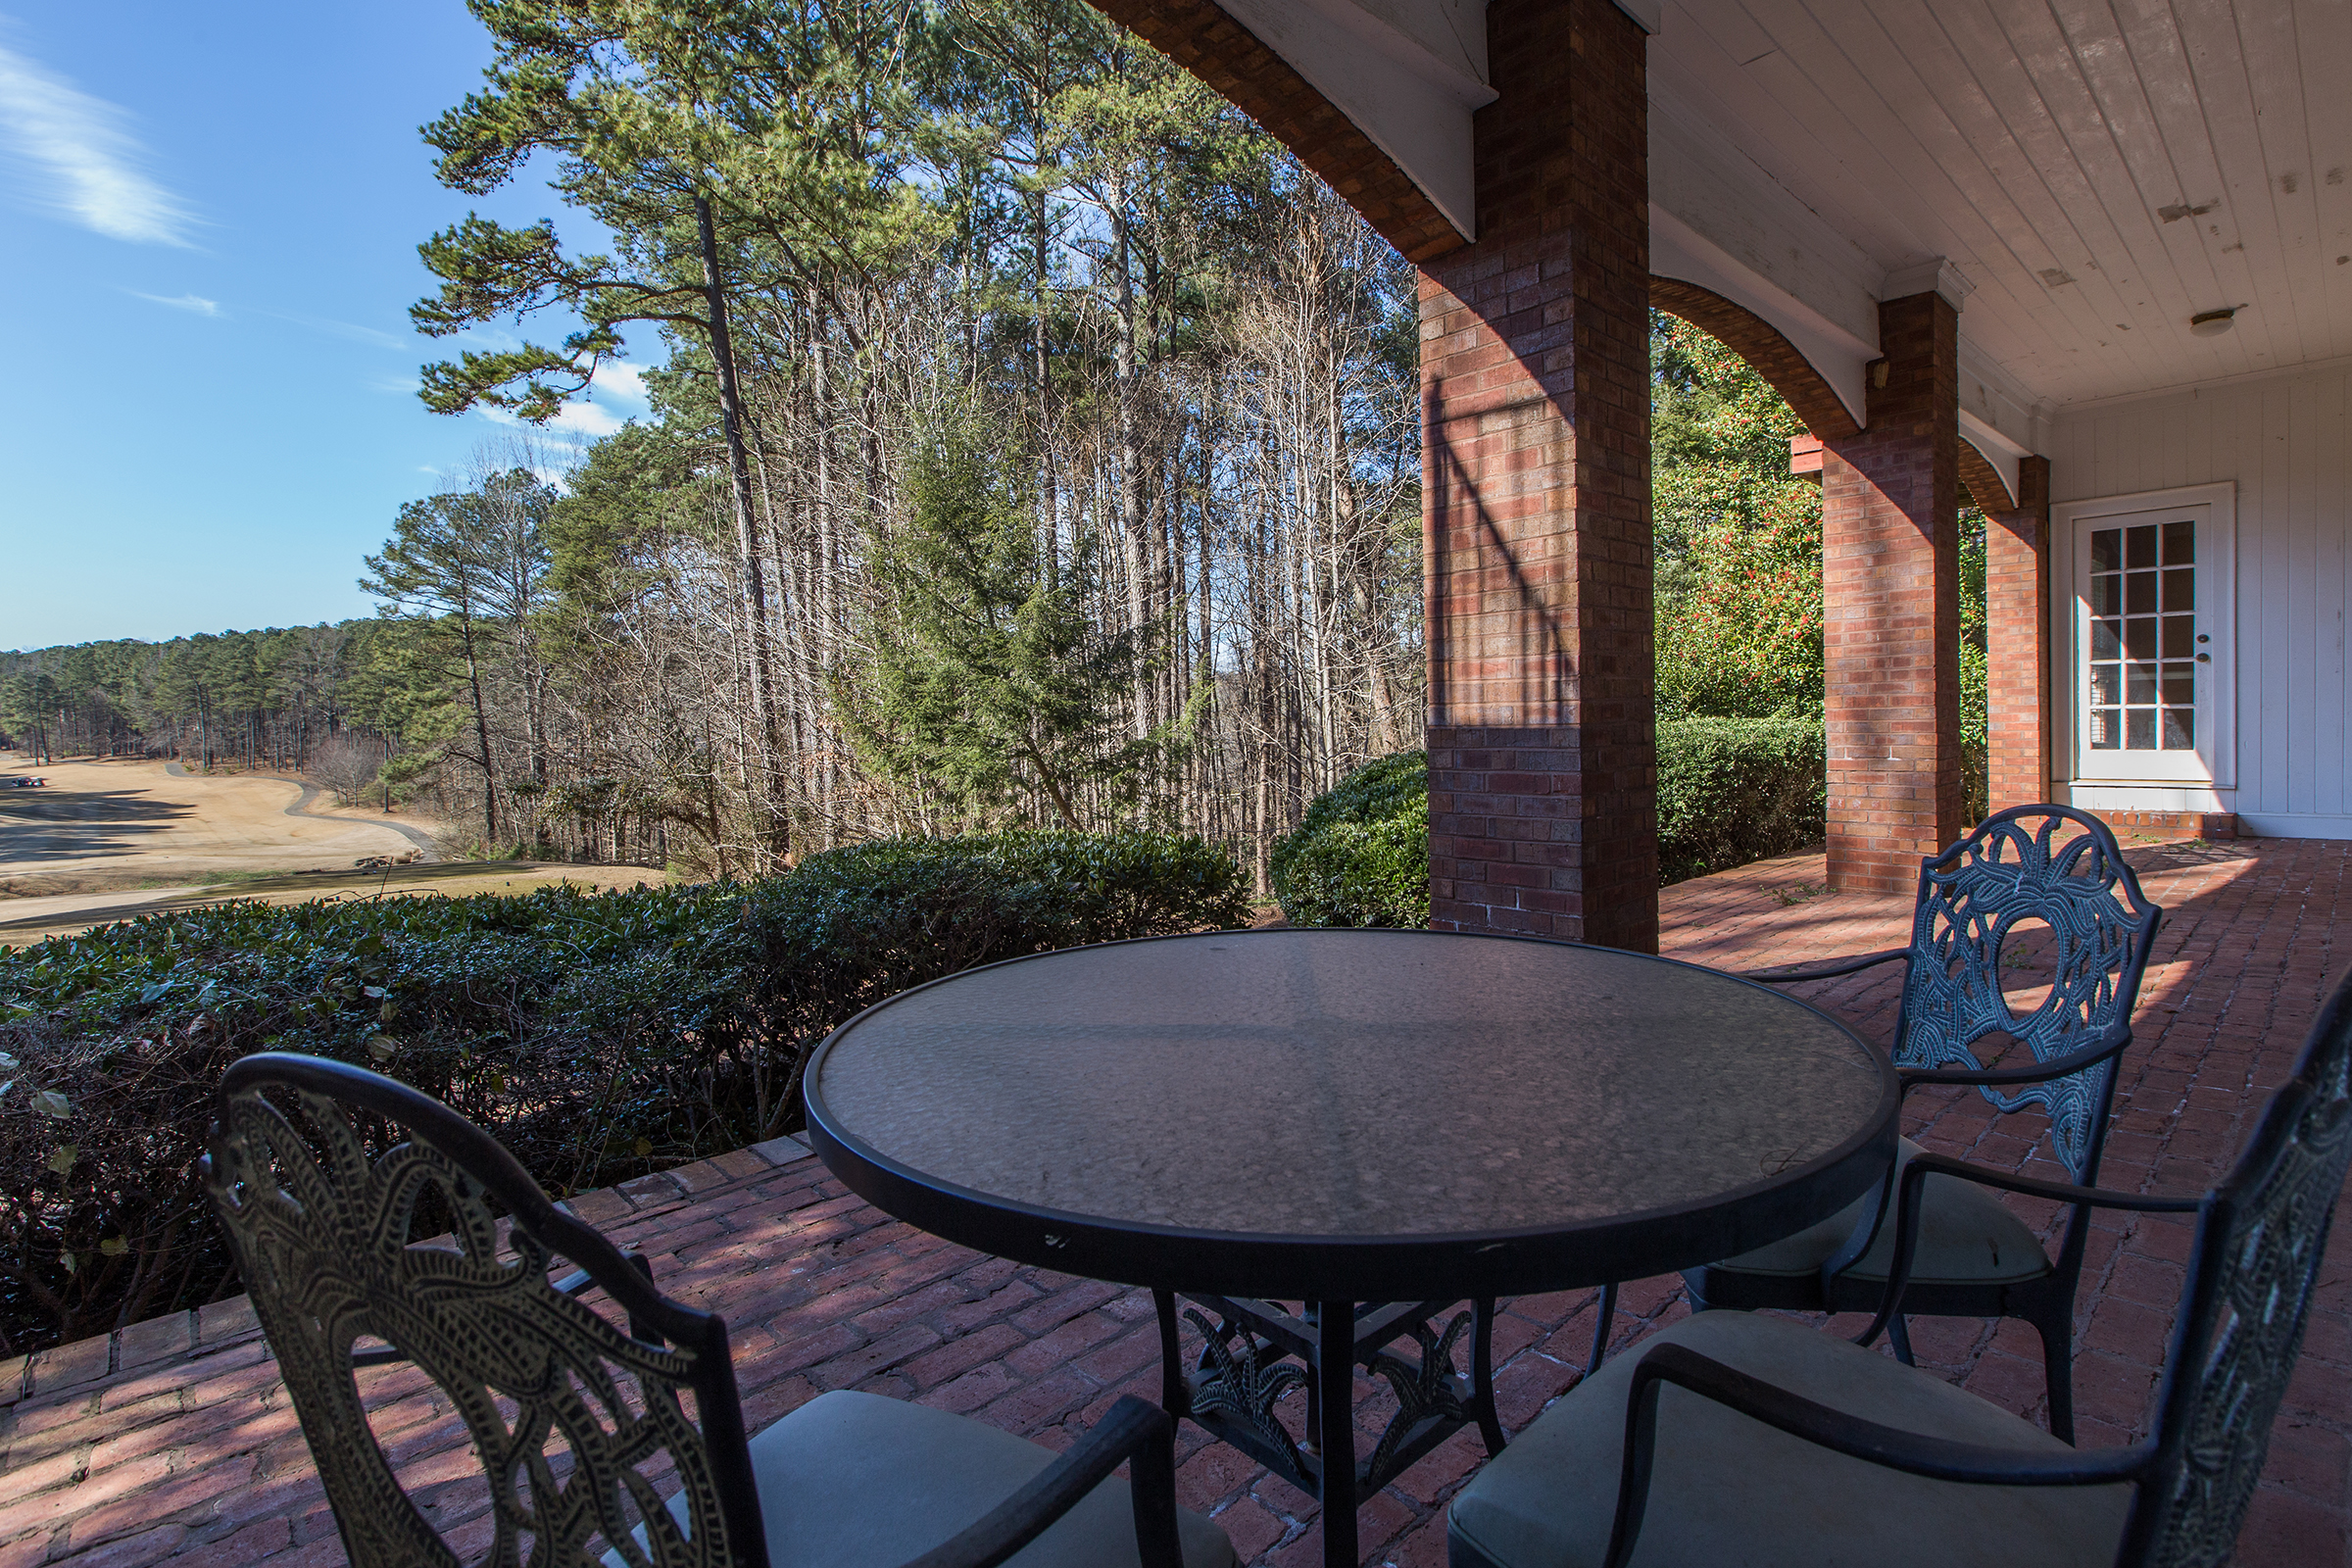 OUTDOOR BREAK AREA, ALPHARETTA, GA